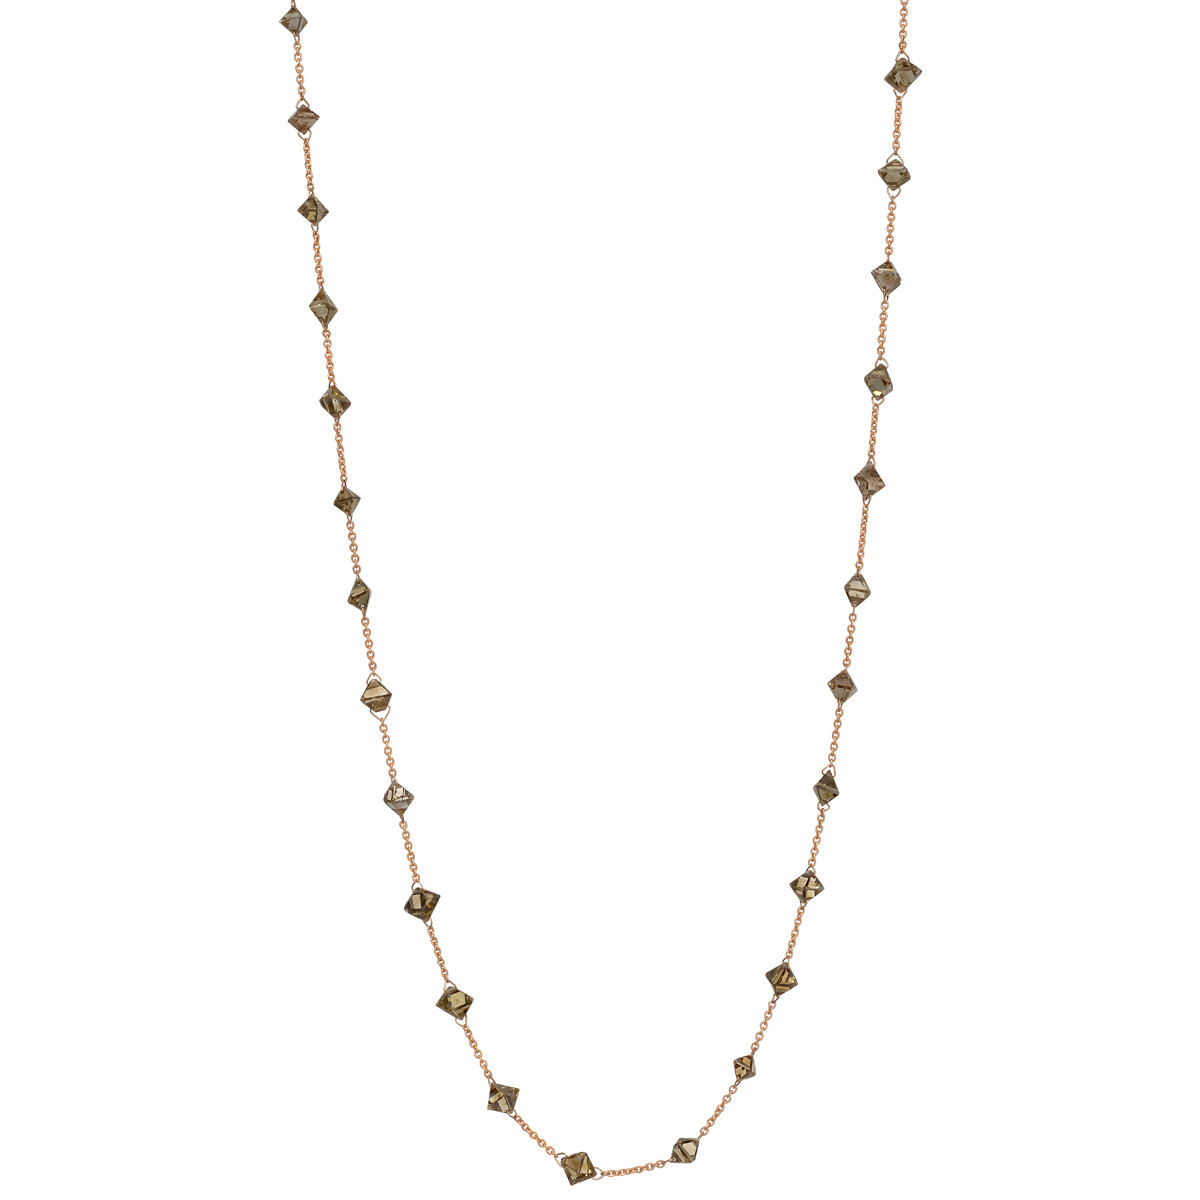 Fancy-Cut Brown Diamond Chain Necklace (12.39 ct tw)